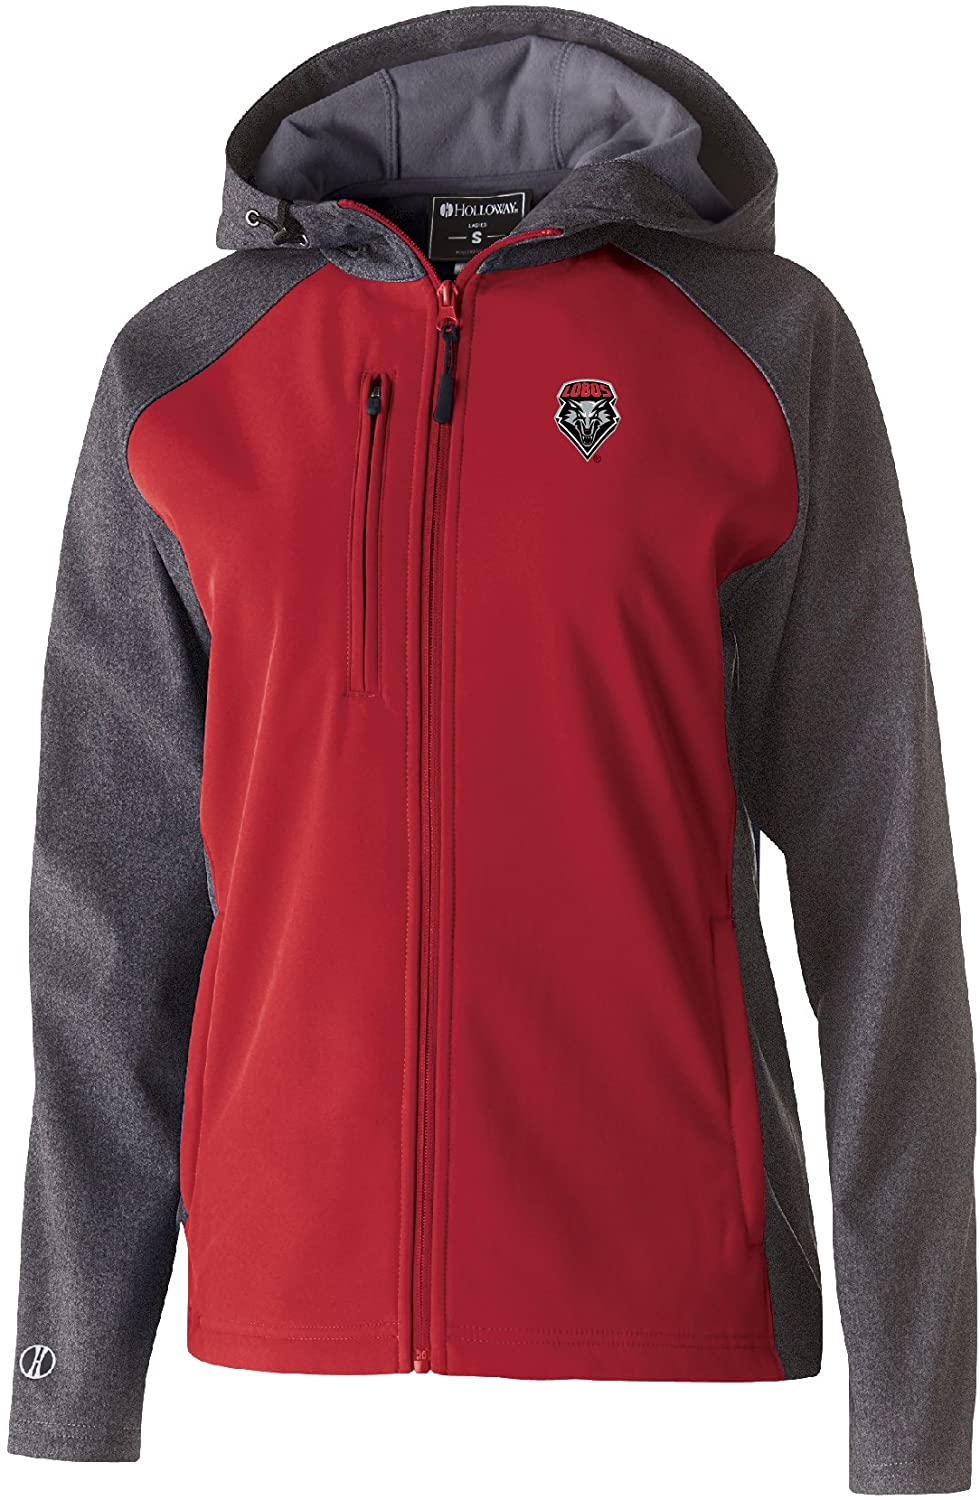 NCAA New Mexico Lobos Women's Raider Soft Shell Jacket, Small, Carbon Print/Scarlet